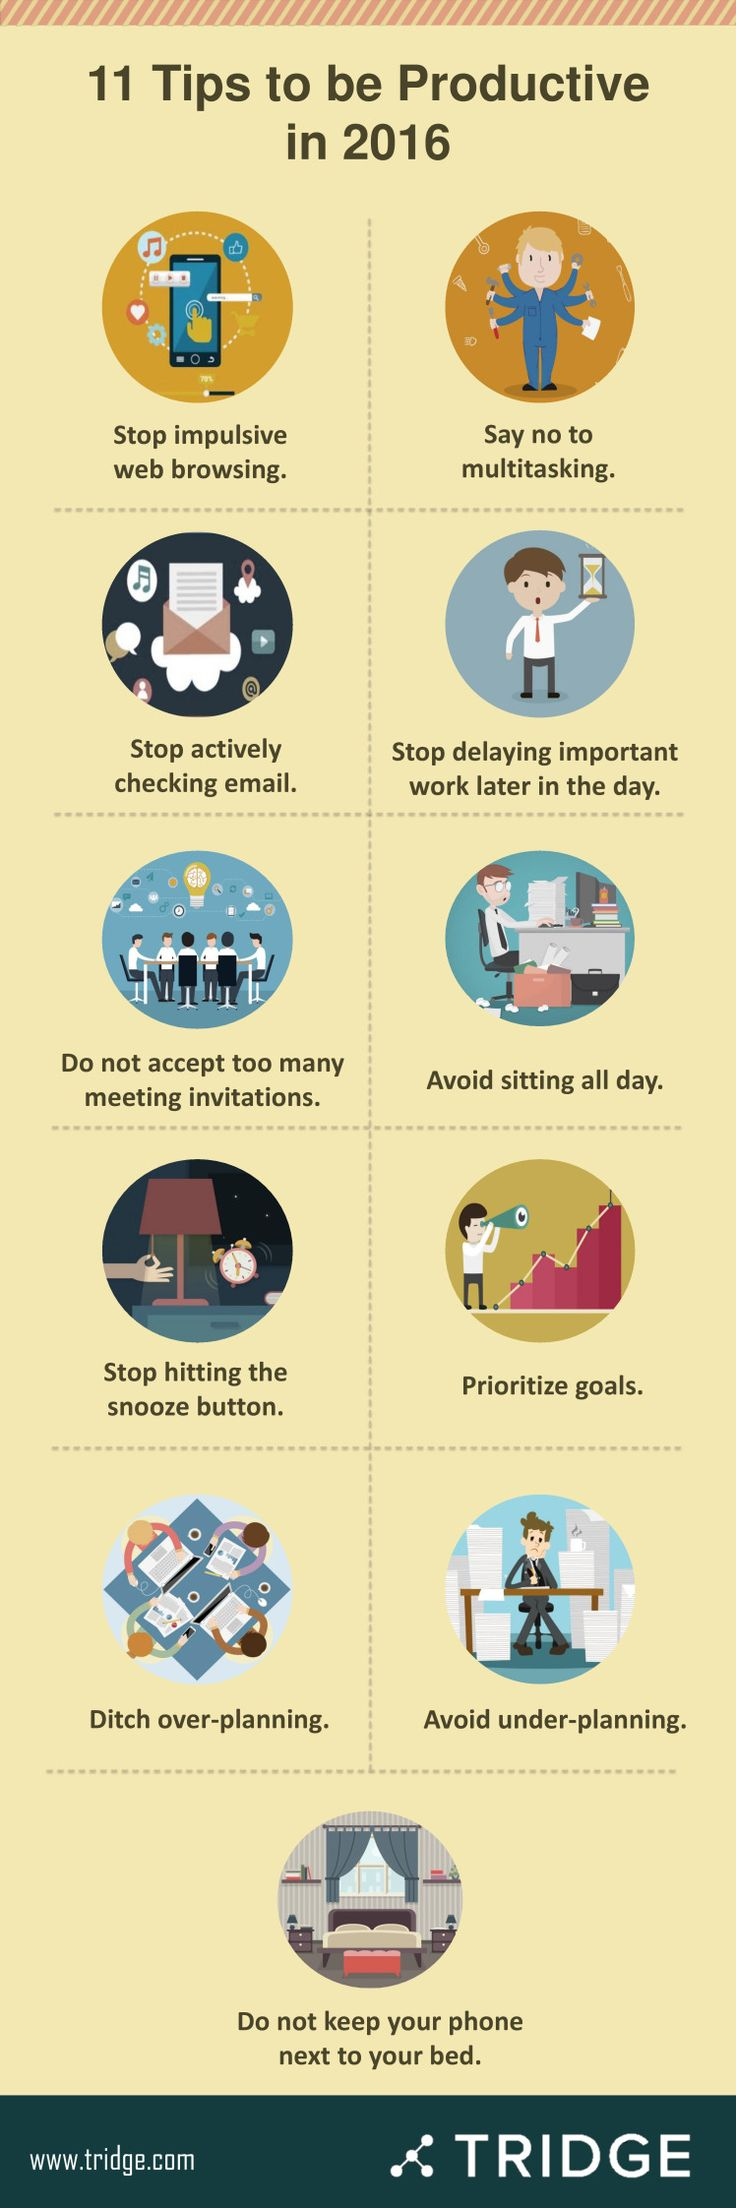 11 Tips to be Productive in 2016